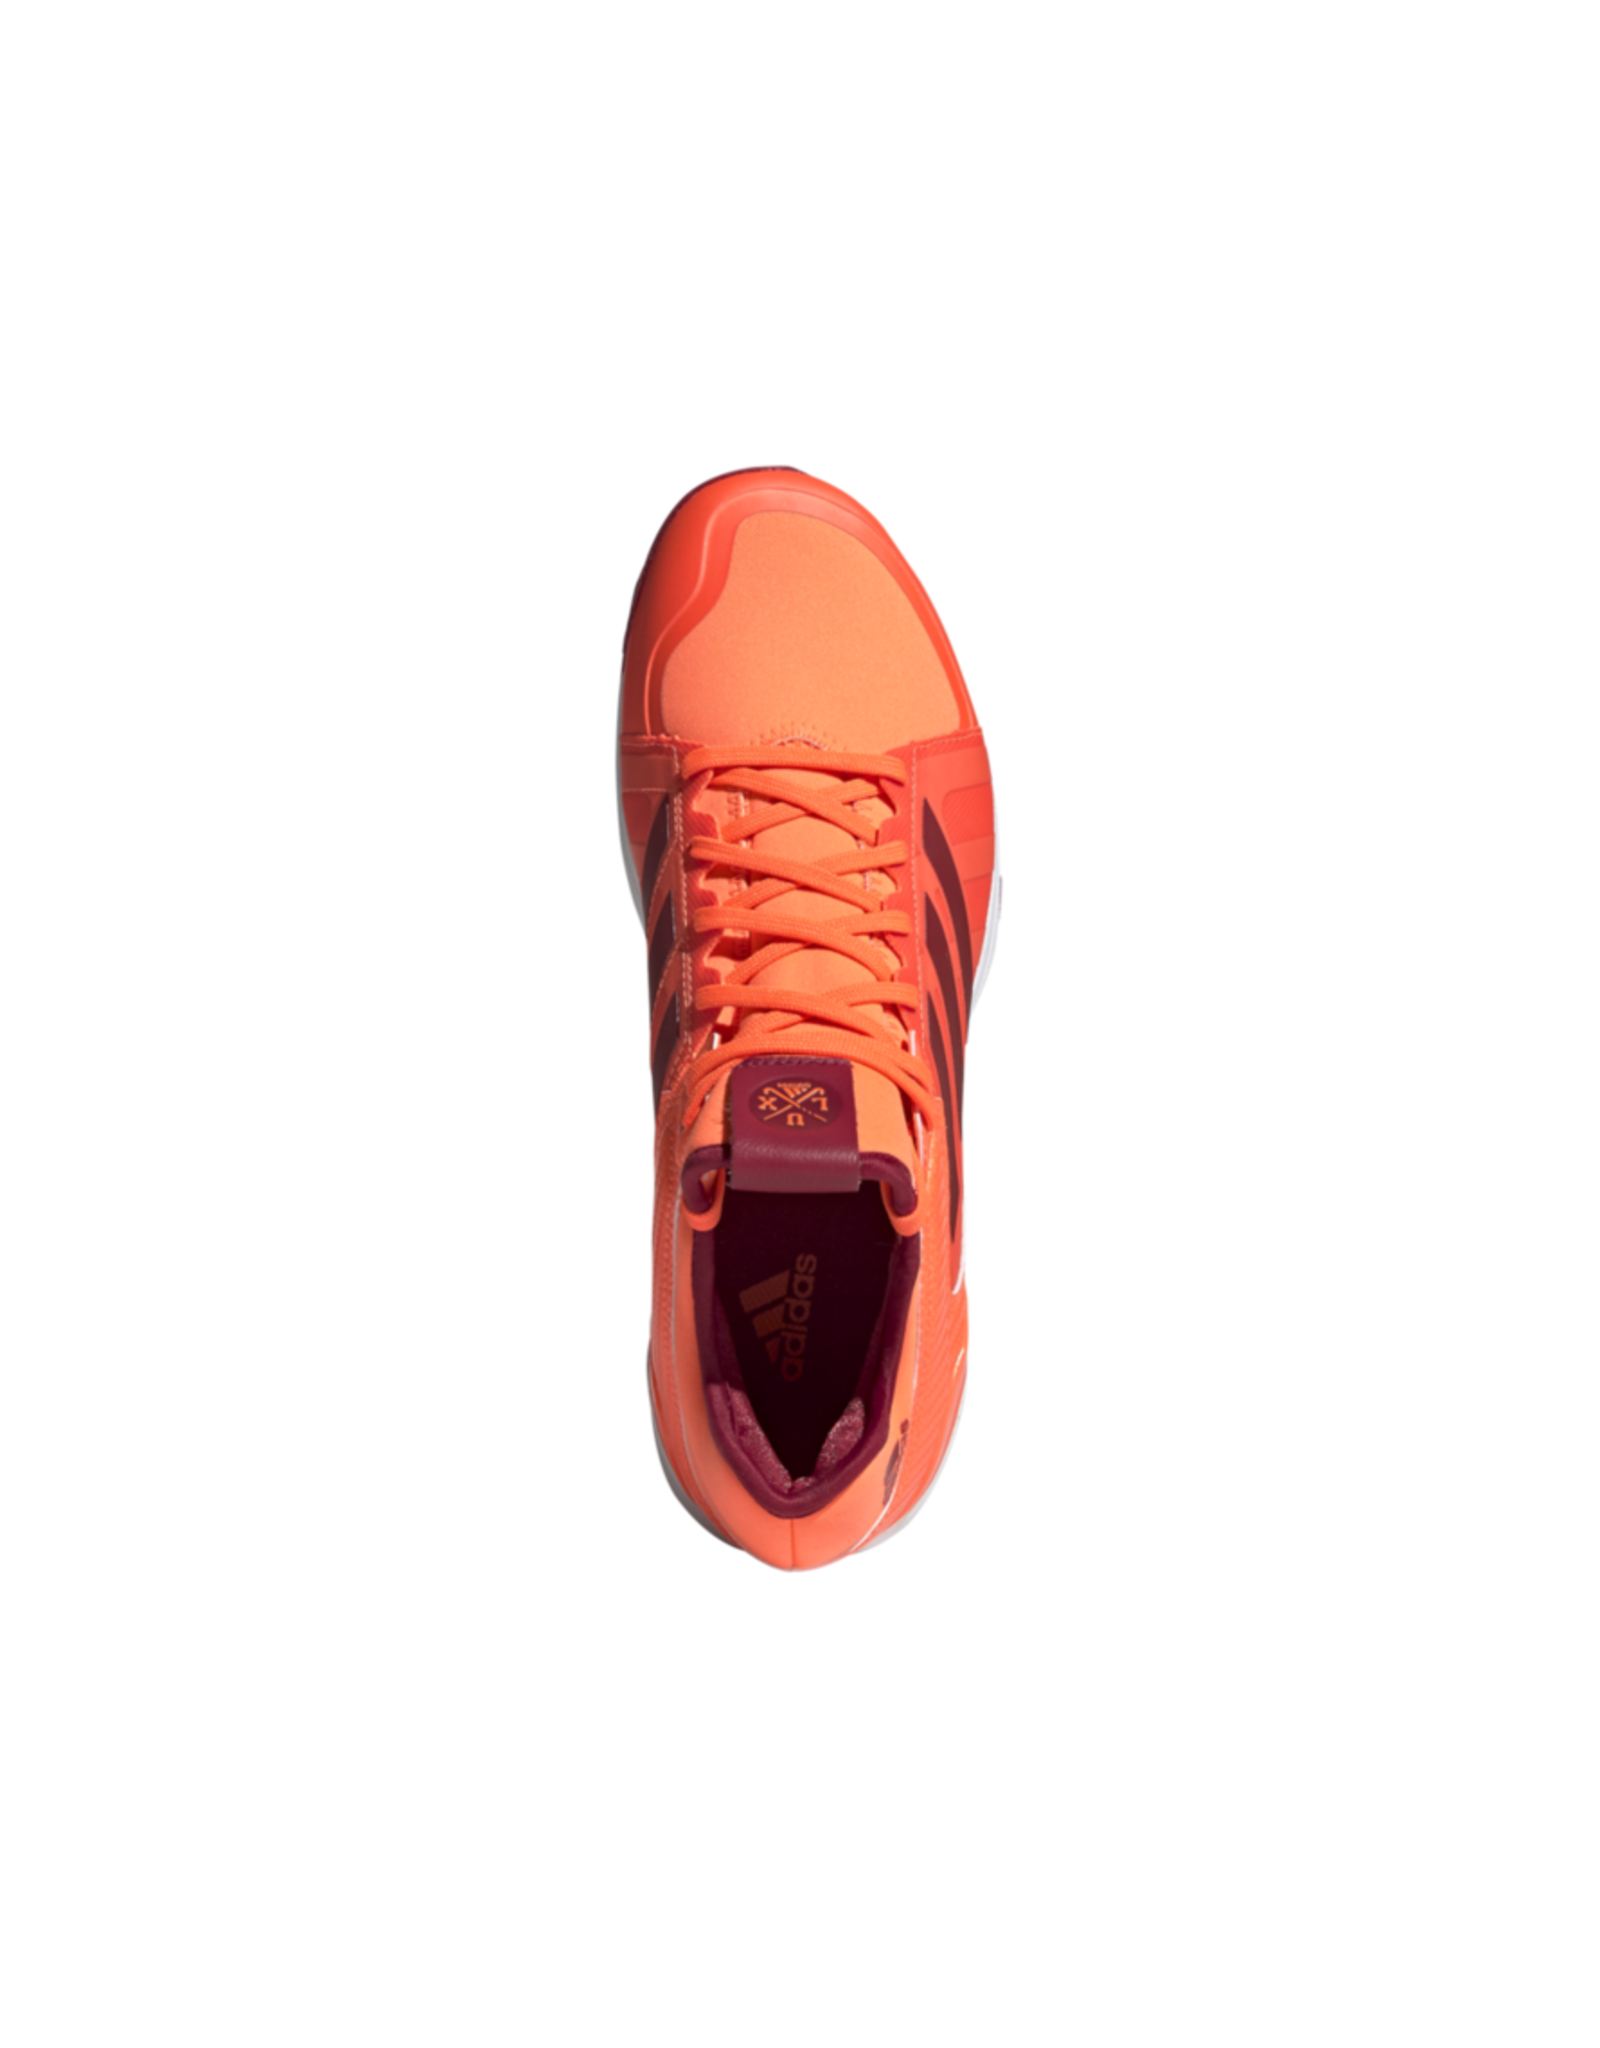 ADIDAS ADIDAS LUX ORANGE/MAROON 19-20